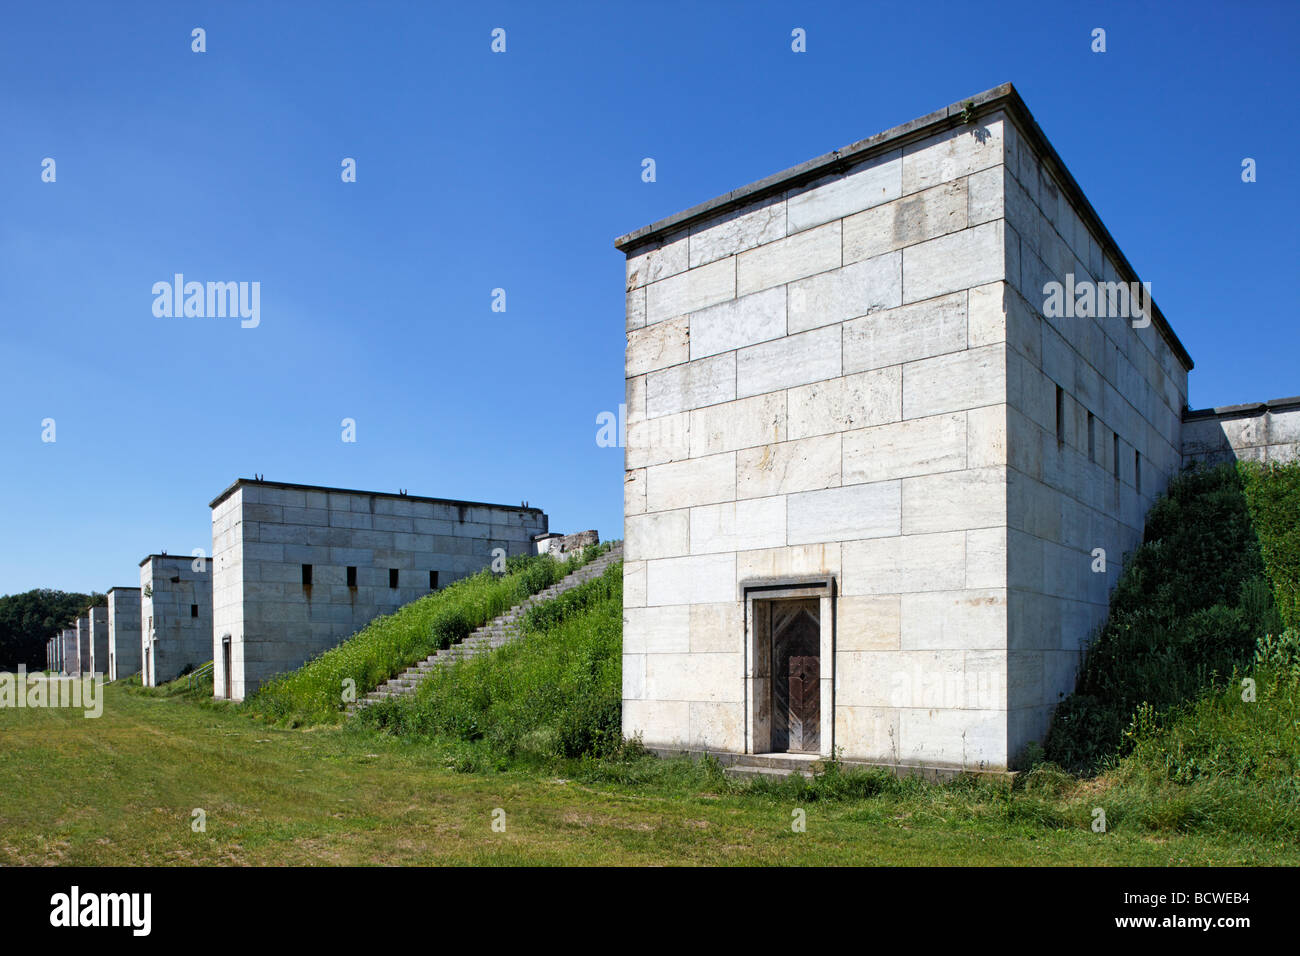 Maerzfeld field, granit towers, parade grounda for the Wehmacht in Third Reich, monumental building, Reichsparteitagsgelaende - Stock Image